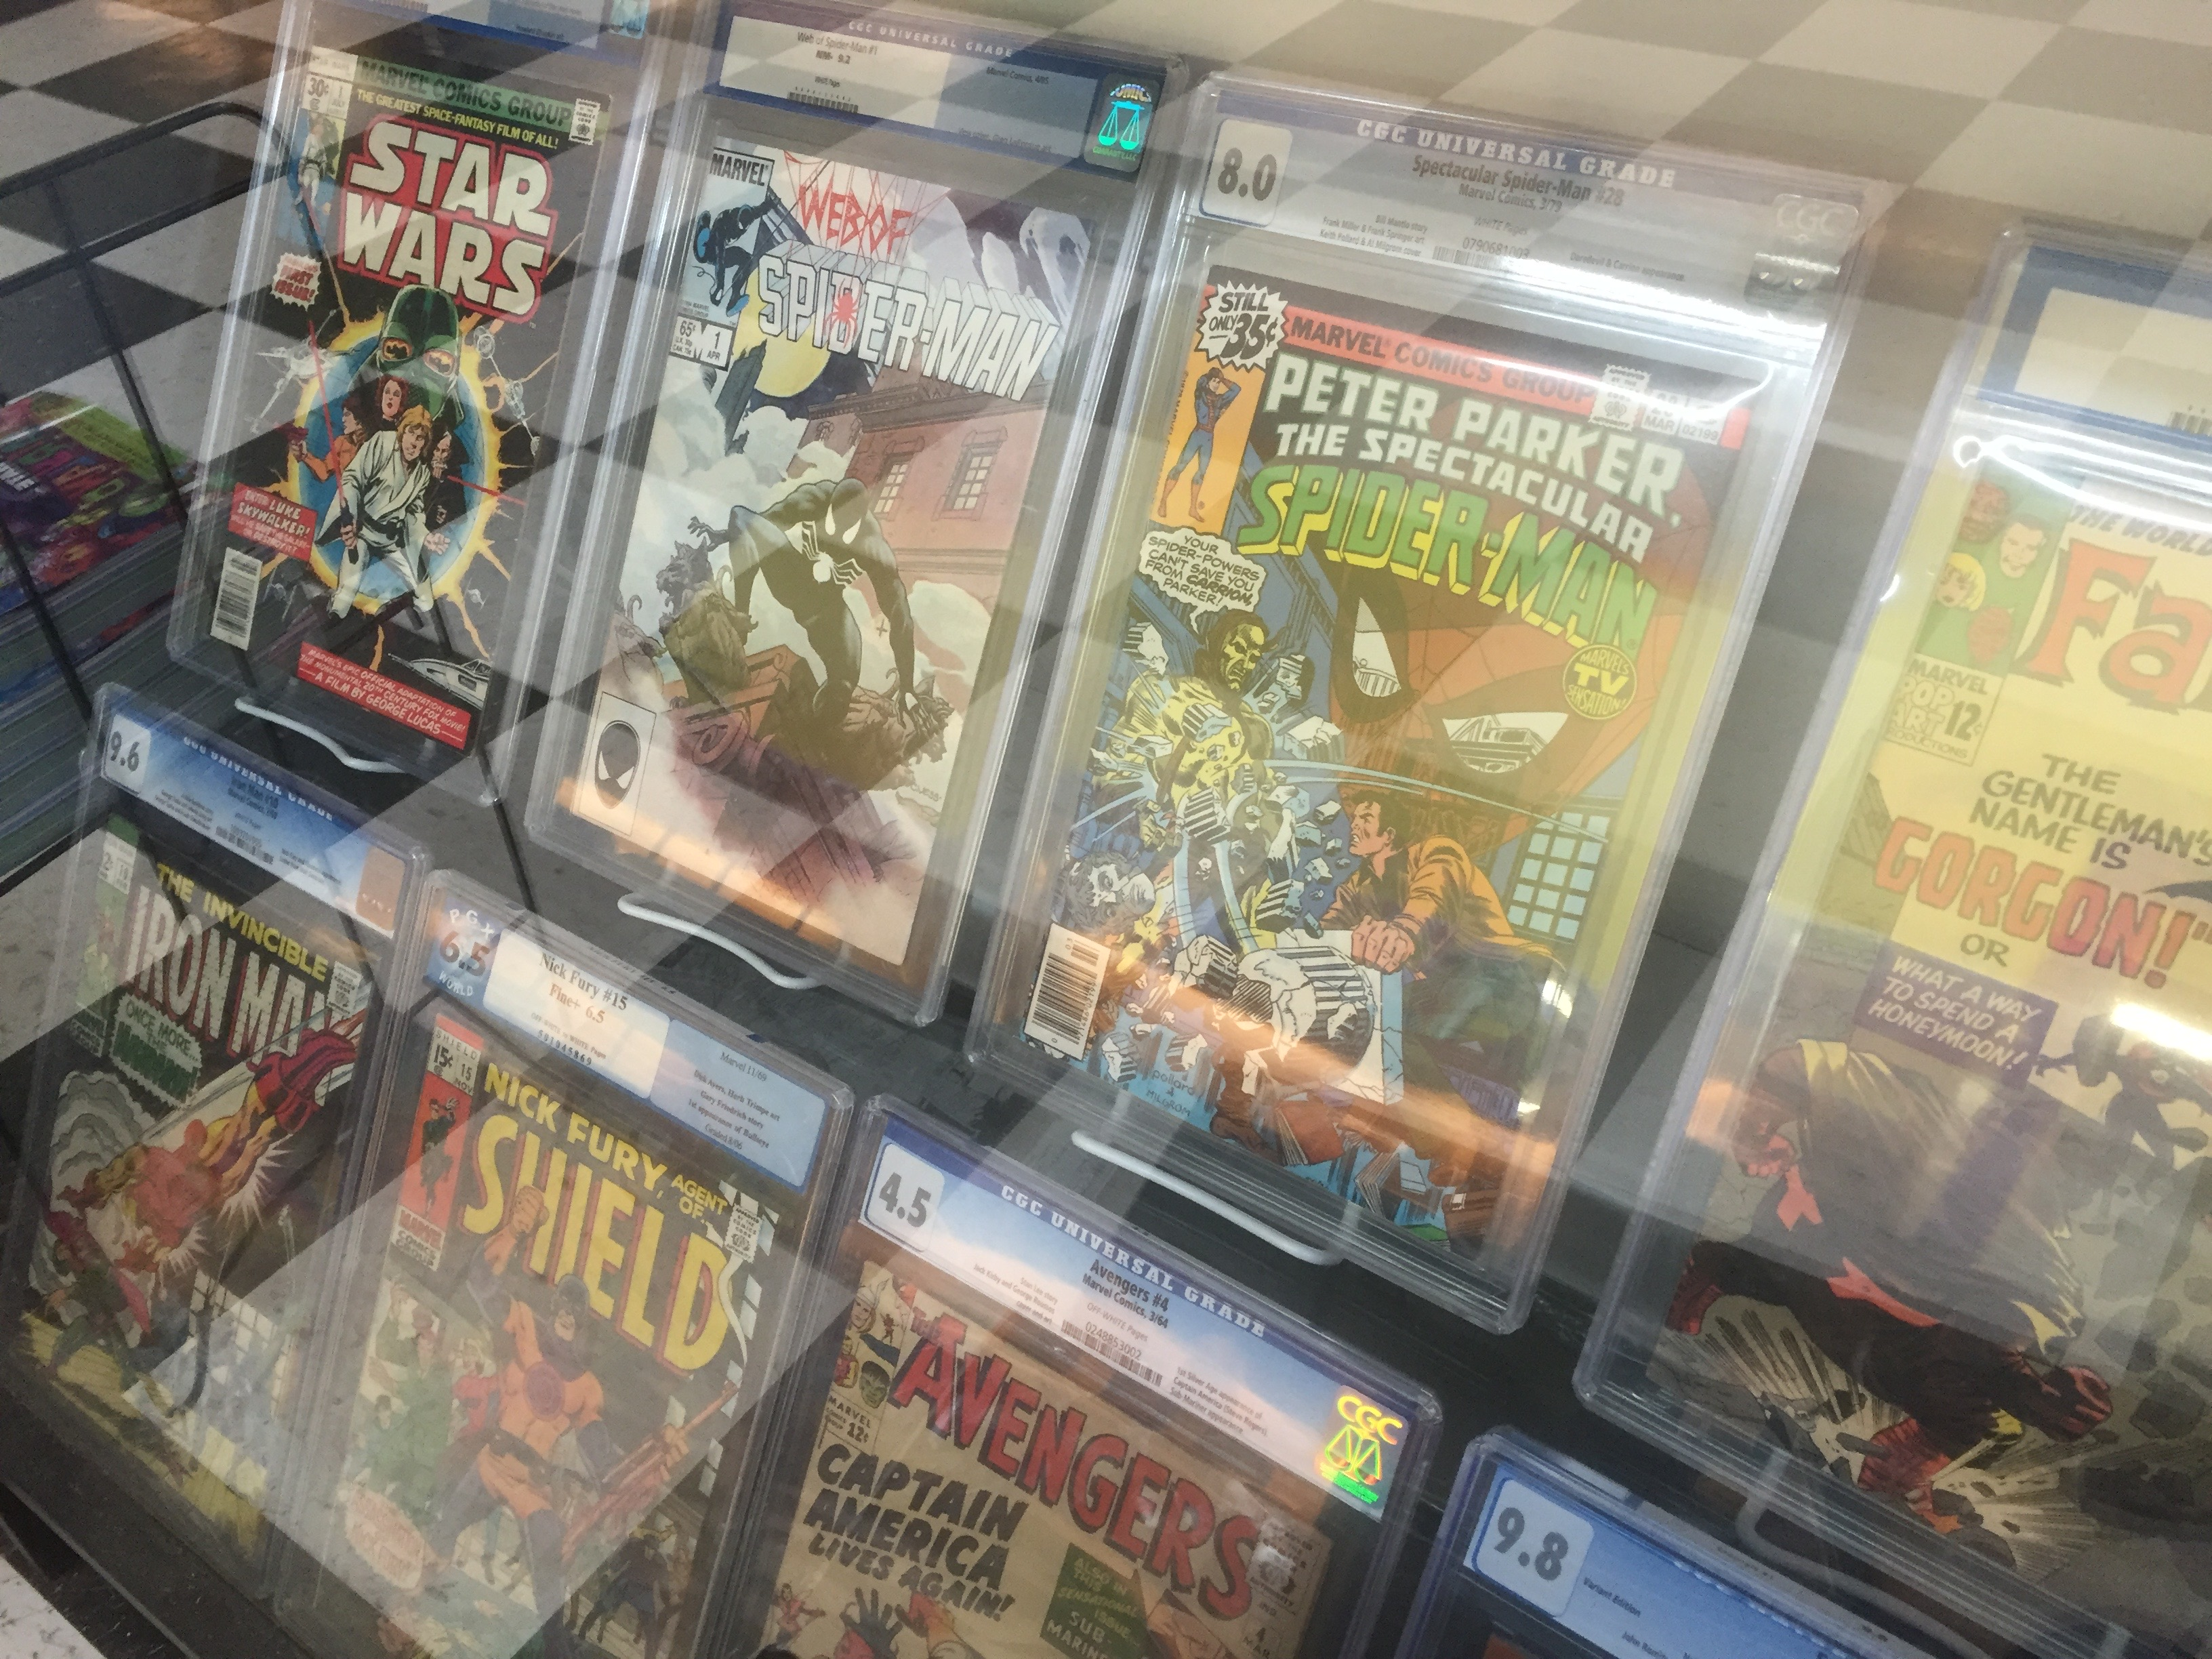 "<span  class=""uc_style_uc_tiles_grid_image_elementor_uc_items_attribute_title"" style=""color:#ffffff;"">Graded Comics at Mammoth Comics</span>"